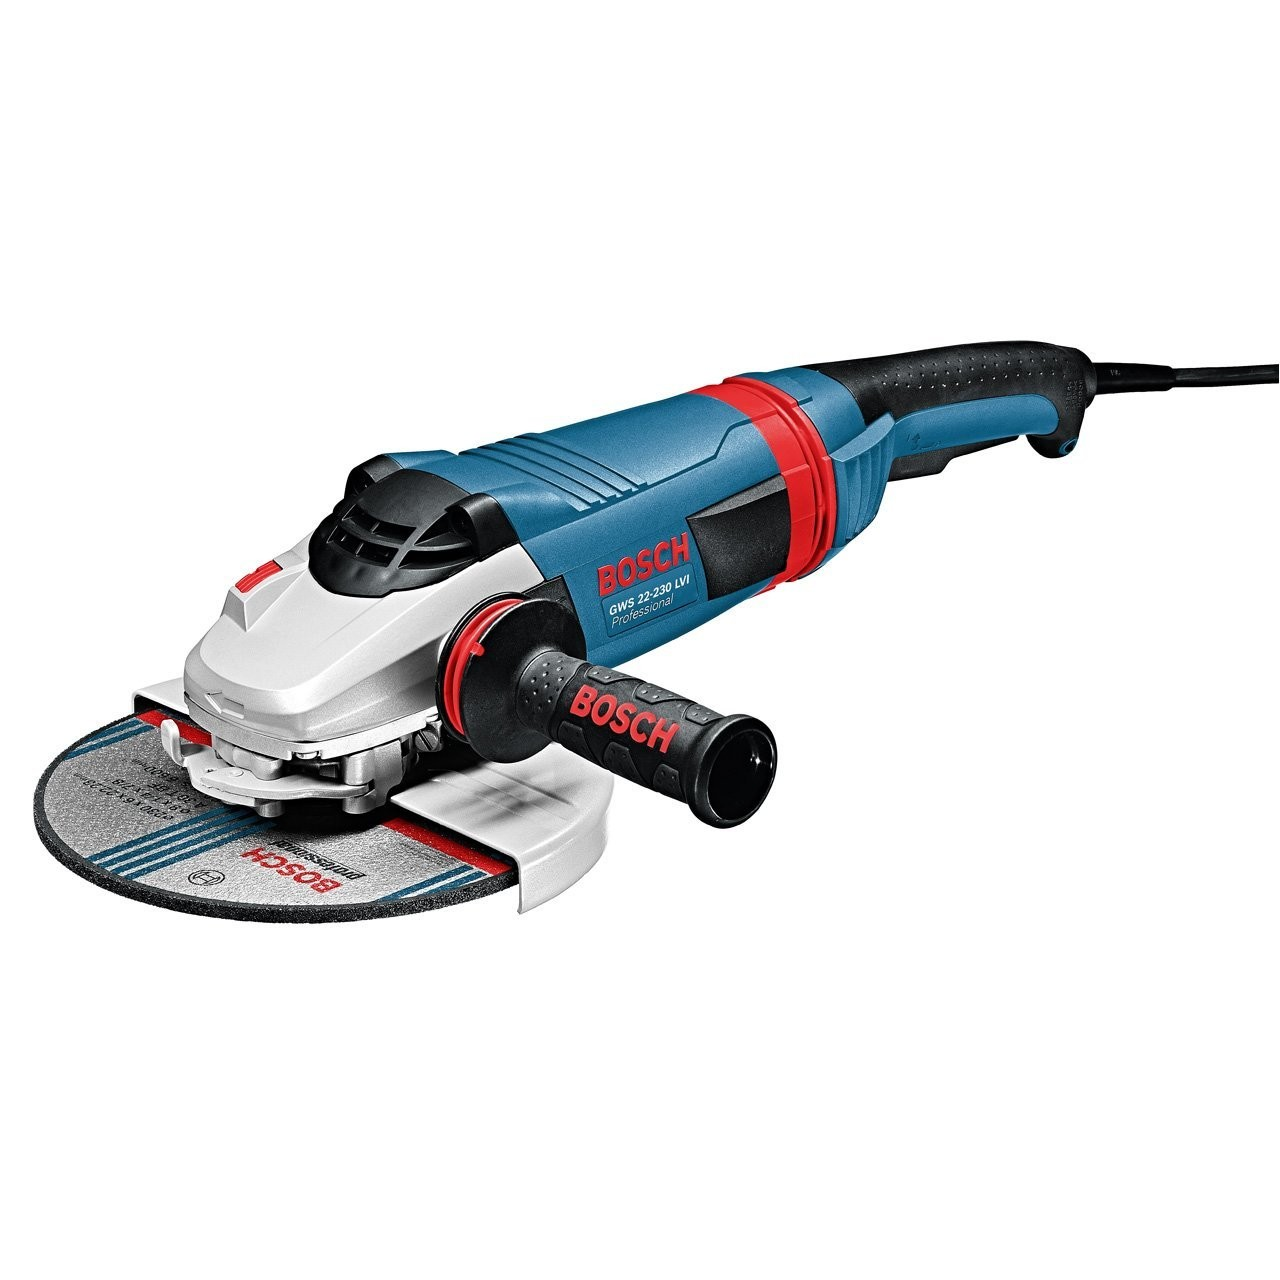 Bosch GWS 22-230 LVI Angle Grinder with Vibration Control Handle 230mm / 9""